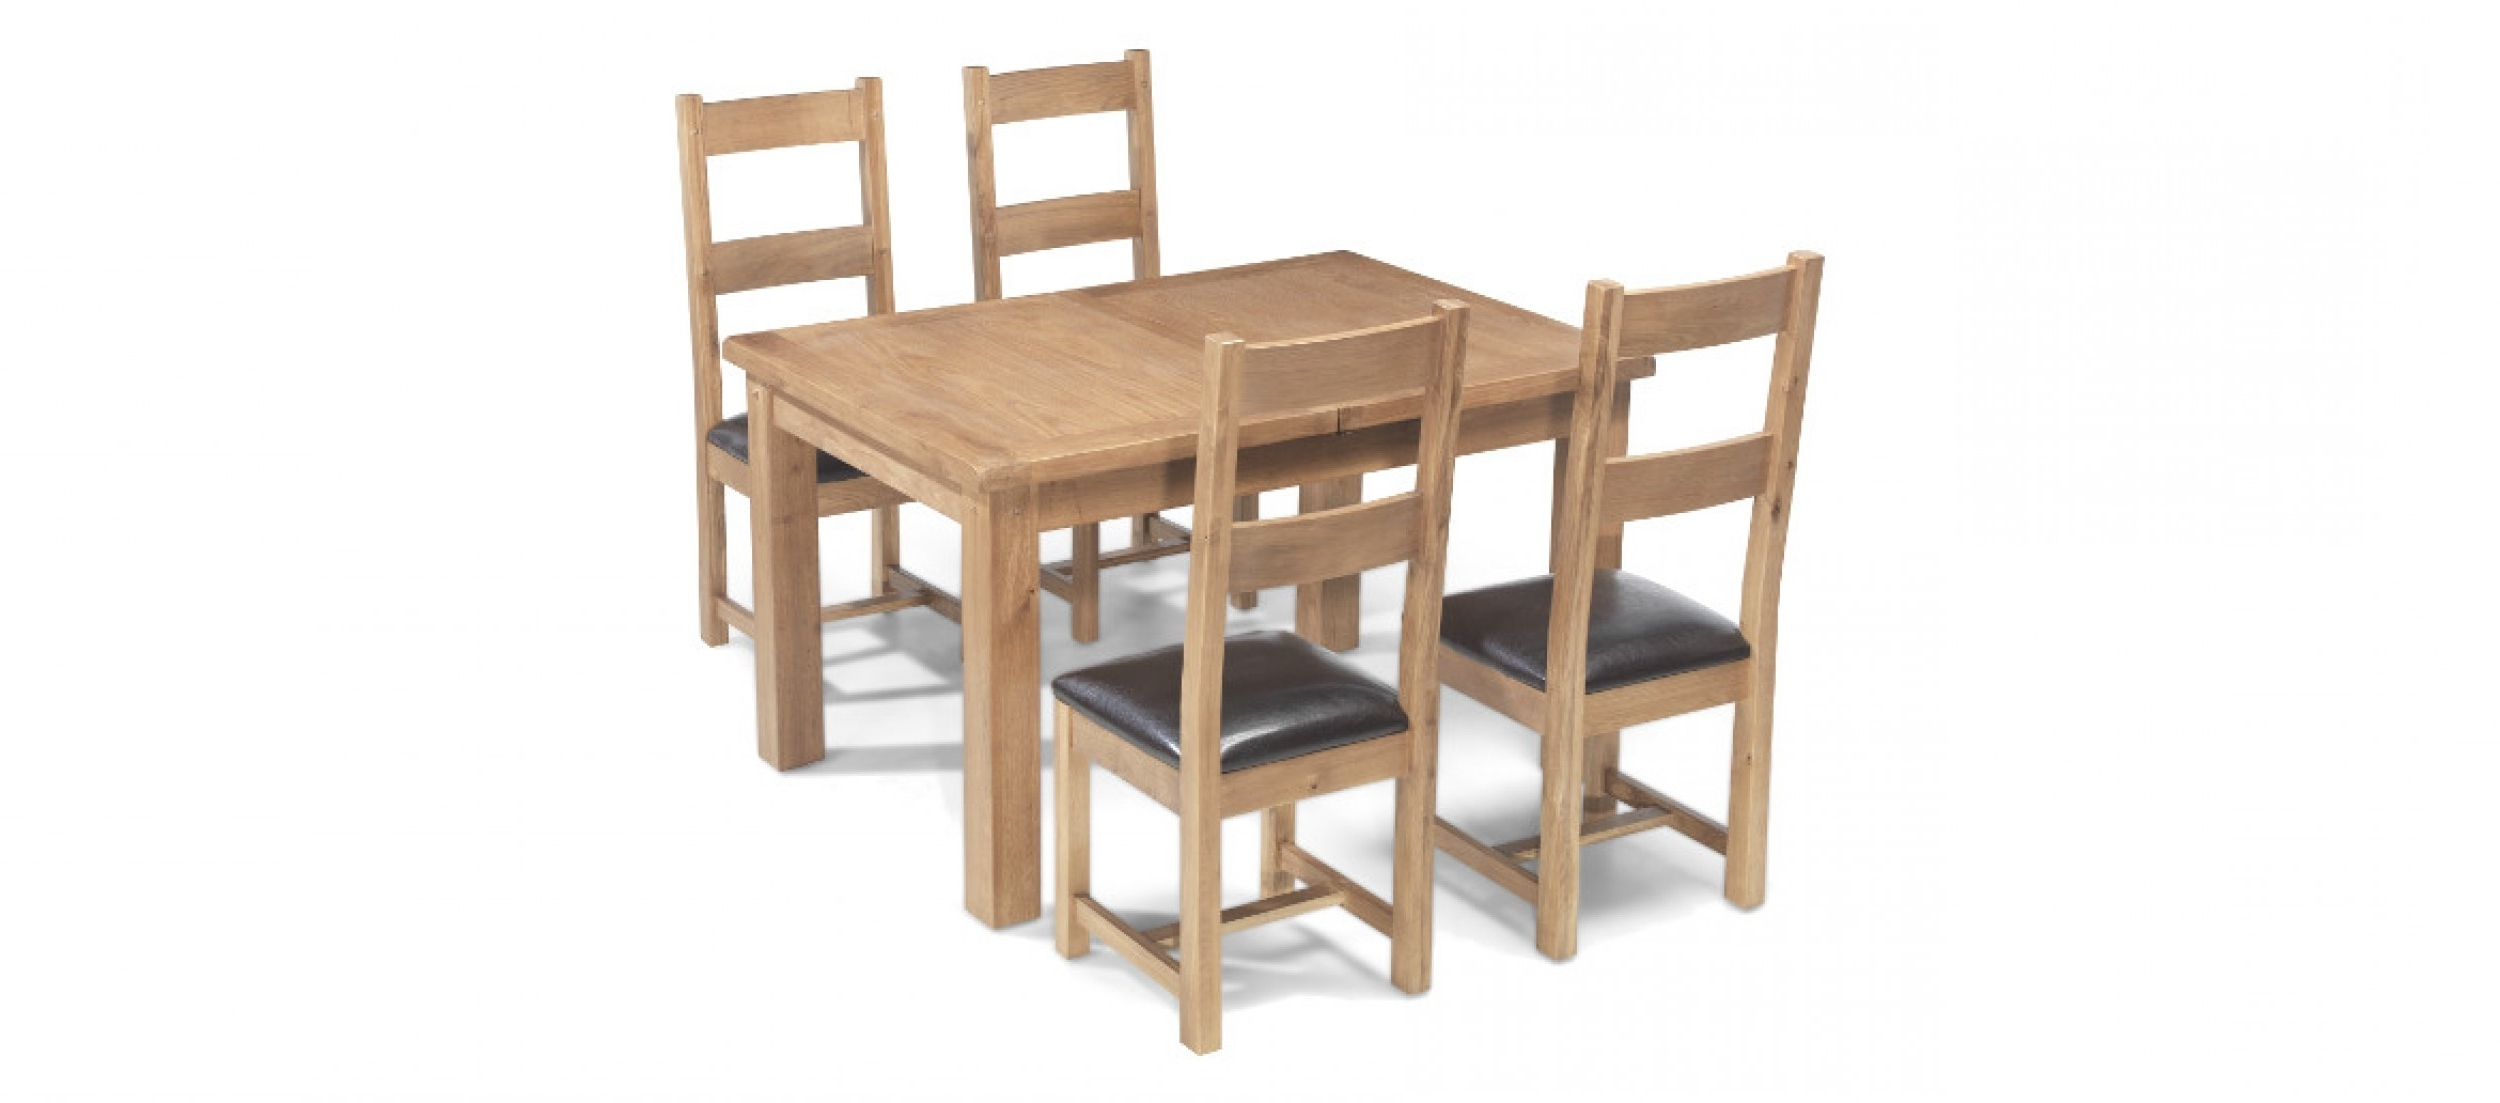 Rustic Oak 132 198 Cm Extending Dining Table And 4 Chairs (View 9 of 25)